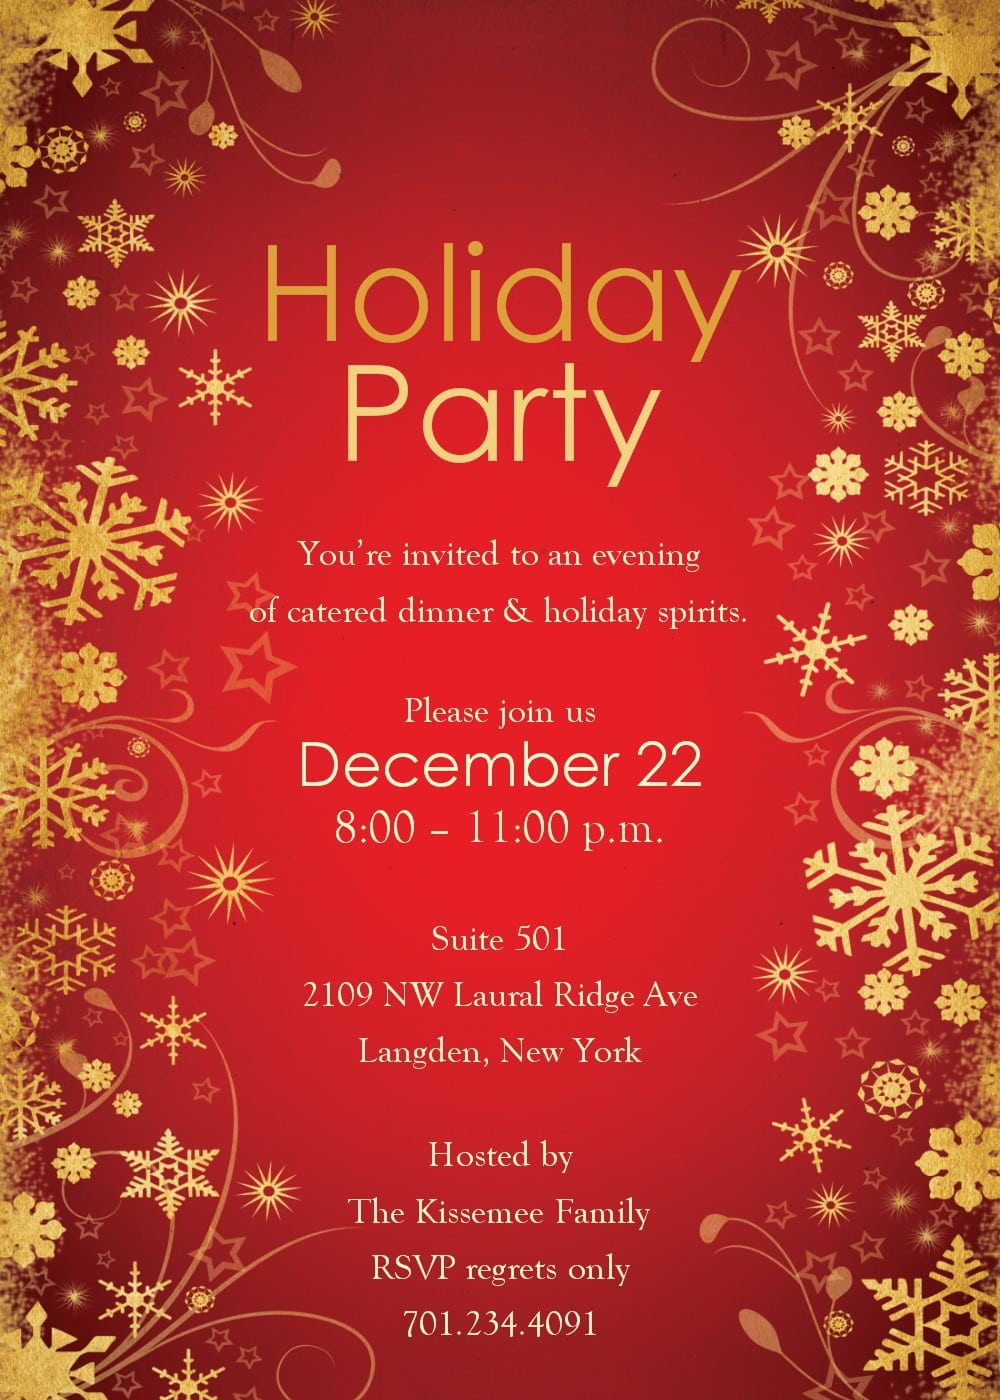 holiday party email invitation template - Kubre.euforic.co